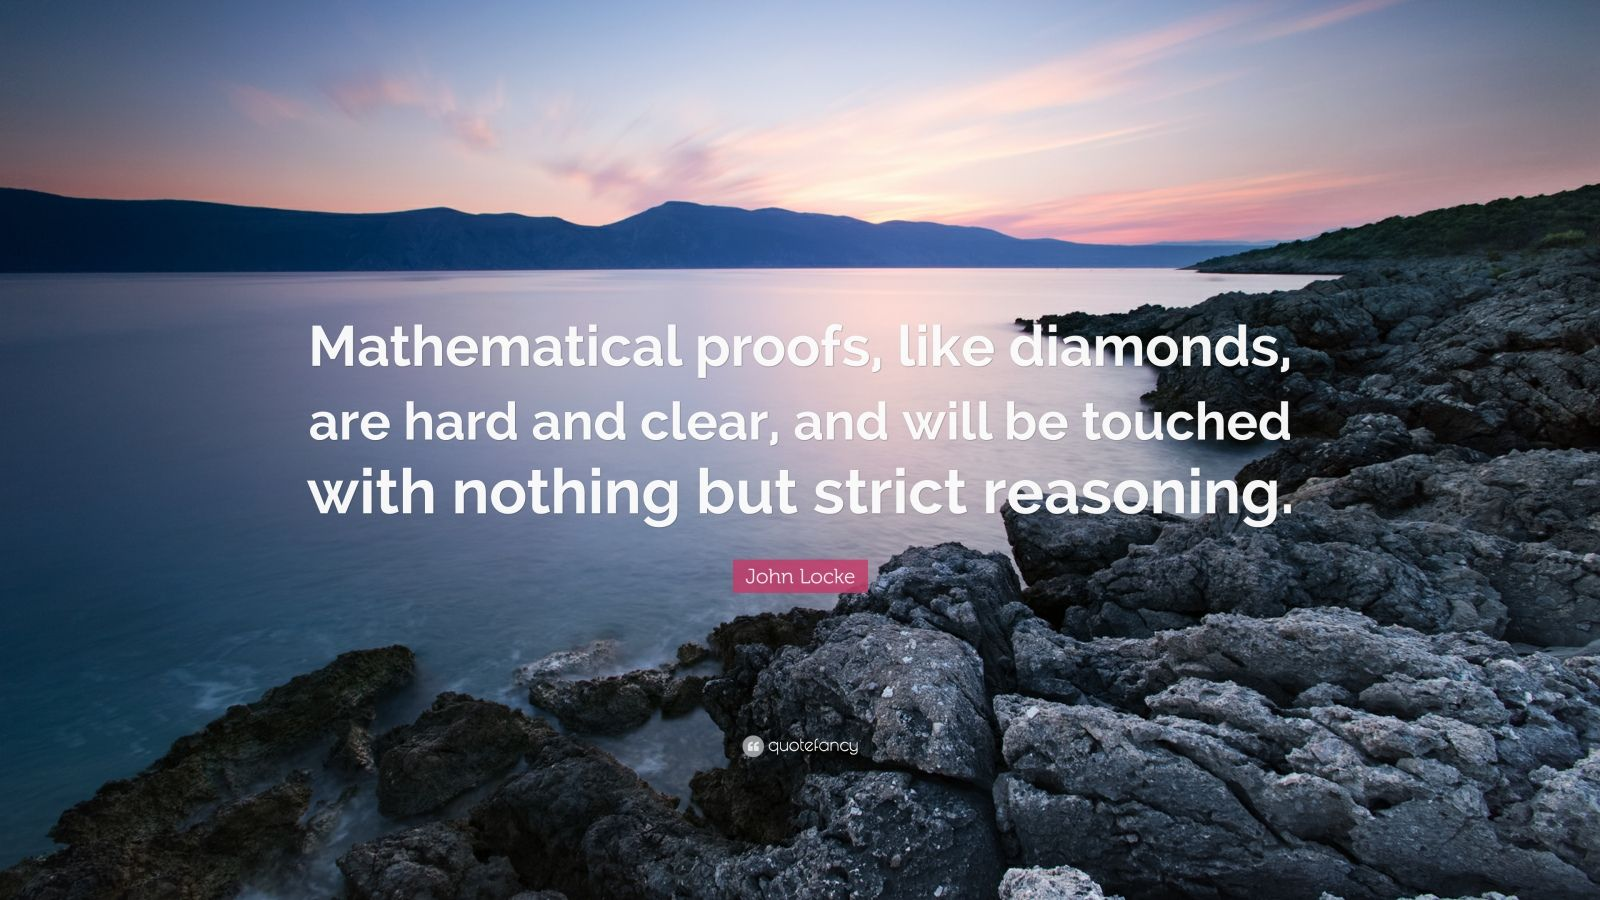 """John Locke Quote: """"Mathematical proofs, like diamonds, are hard and clear, and will be touched with nothing but strict reasoning."""""""